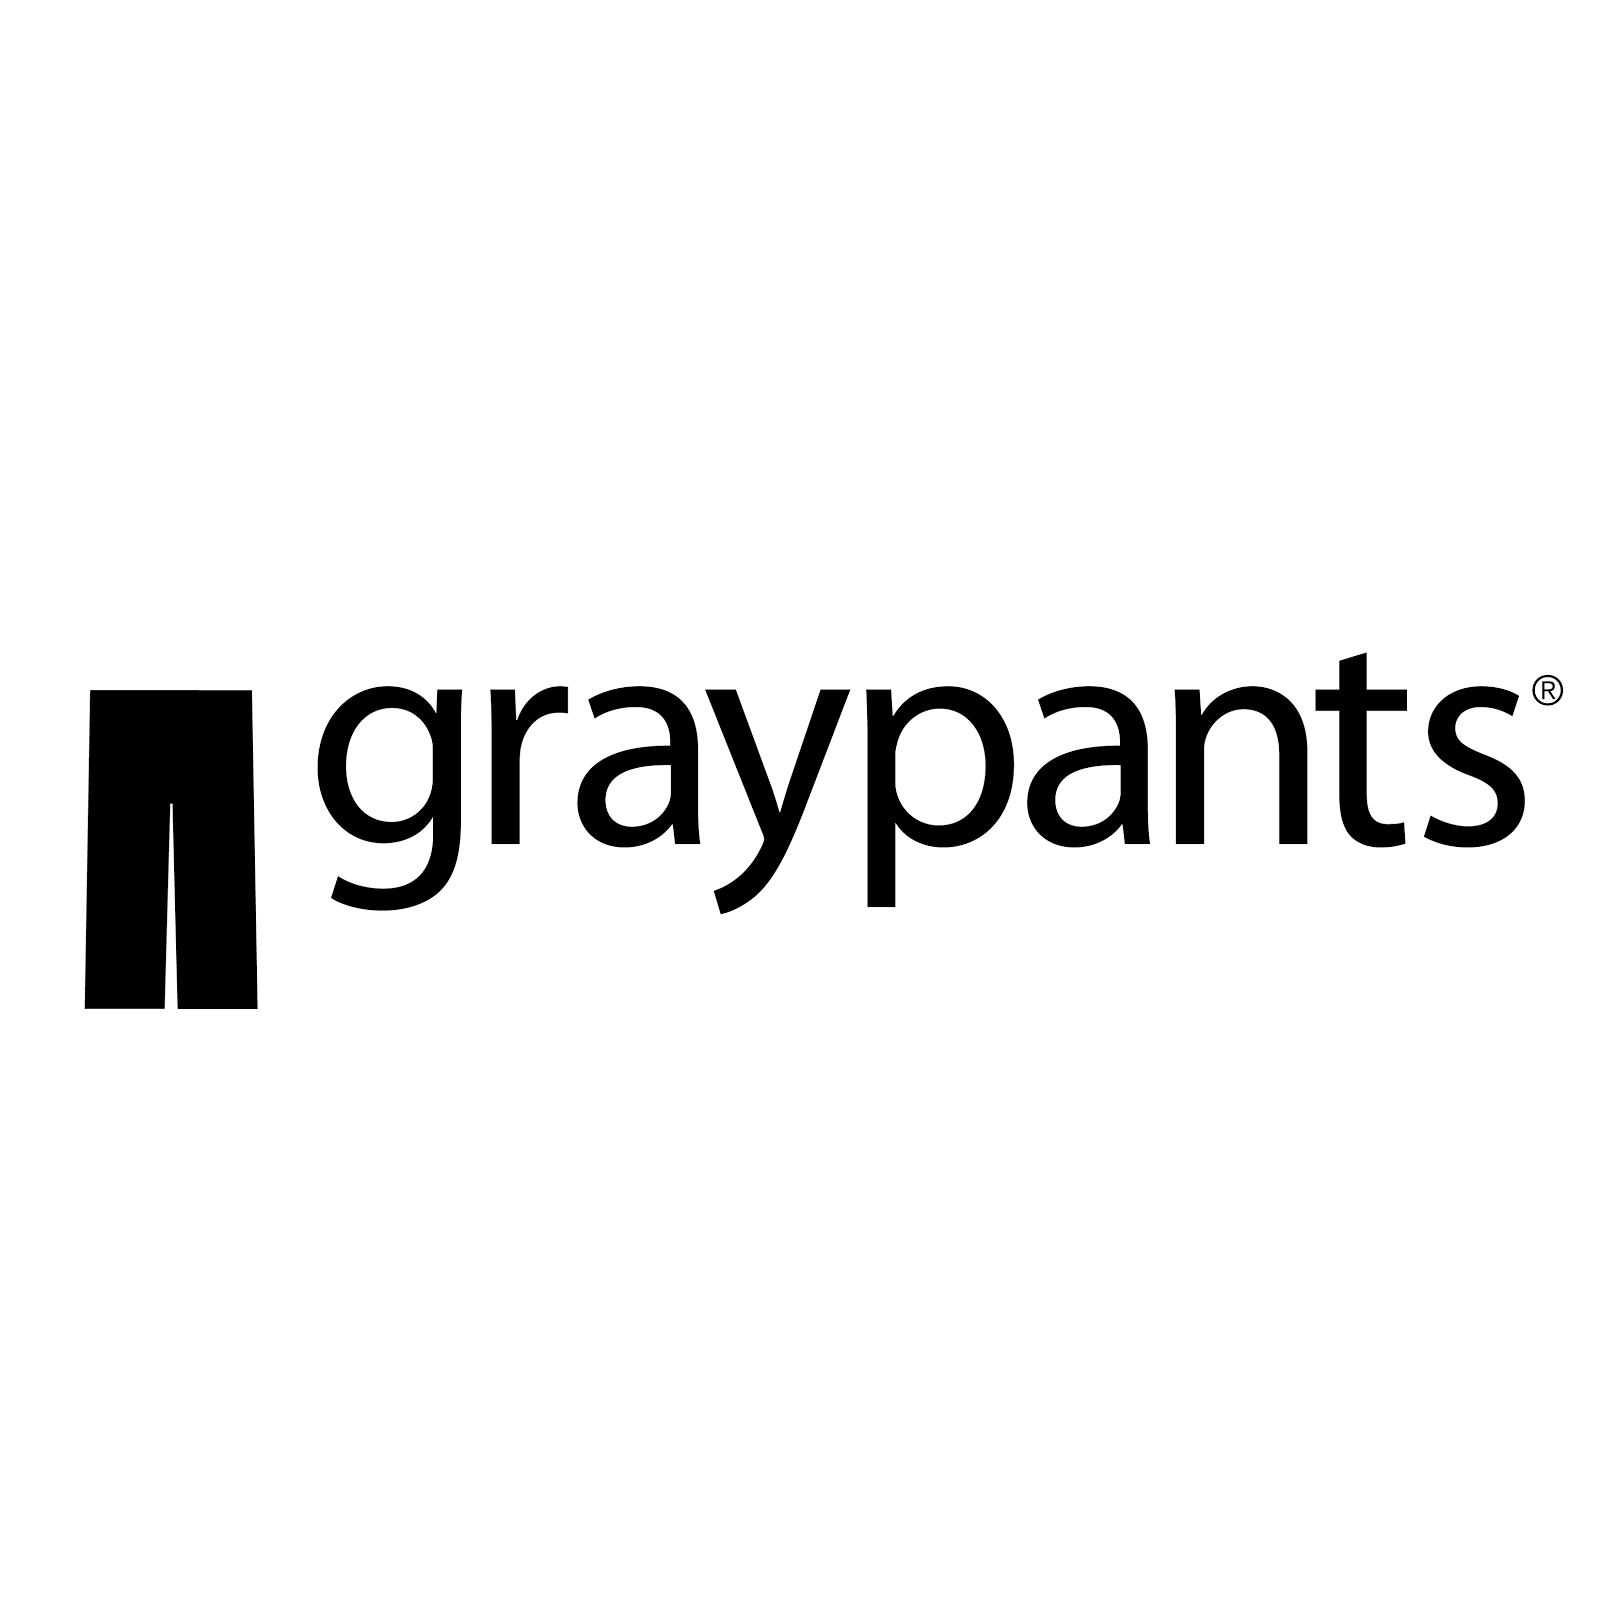 GRAYPANTS, INC